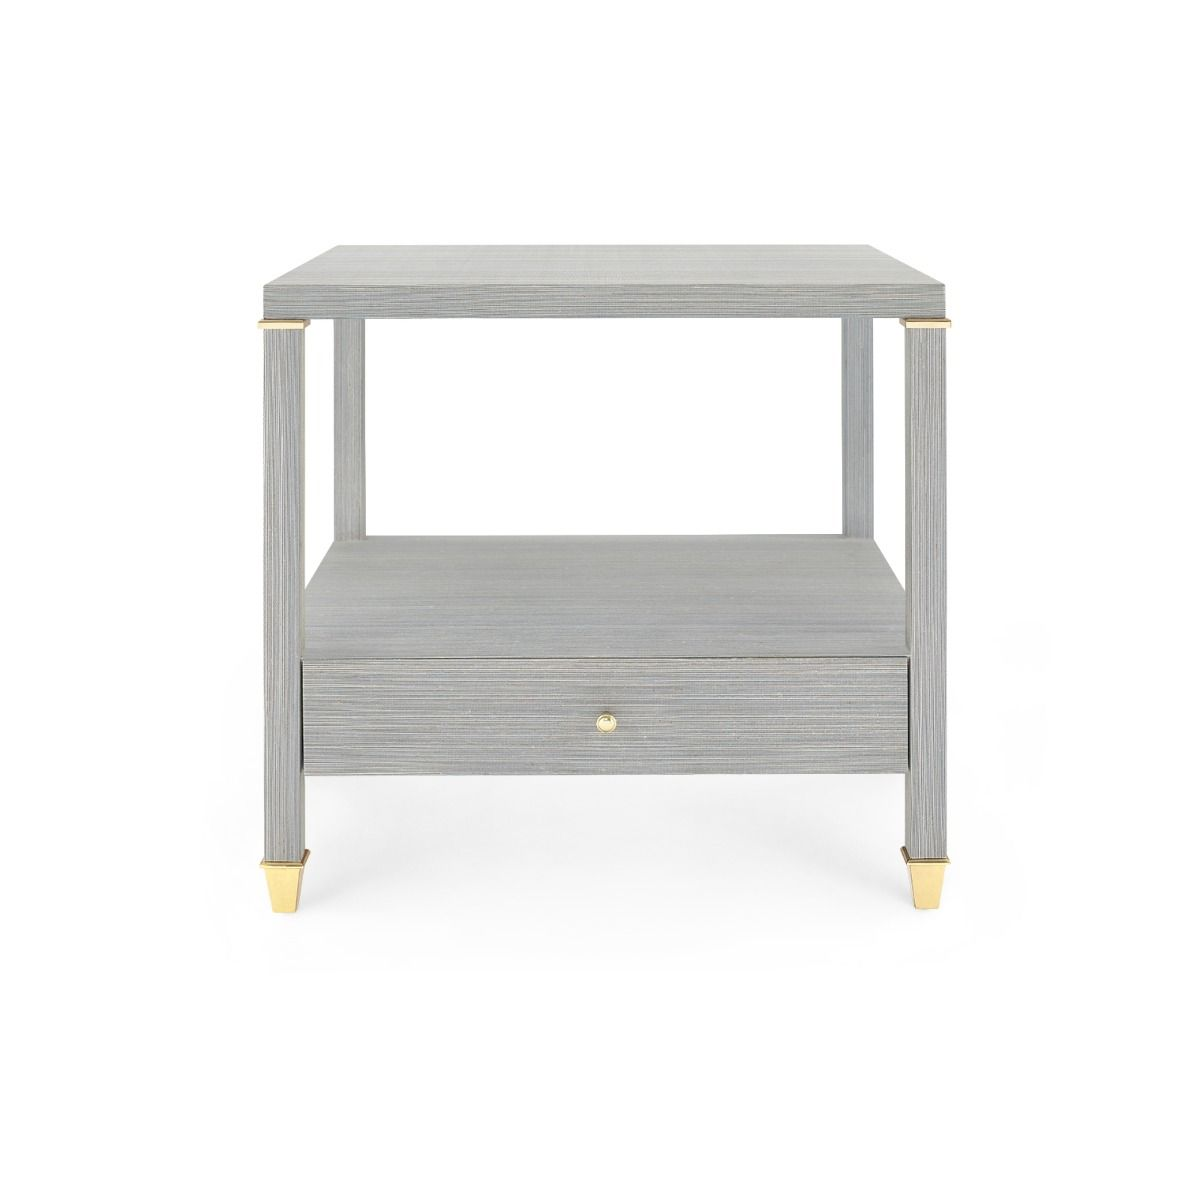 Bungalow 5 - PASCAL 1-DRAWER SIDE TABLE, SLATE BLUE-Bungalow 5-Blue Hand Home